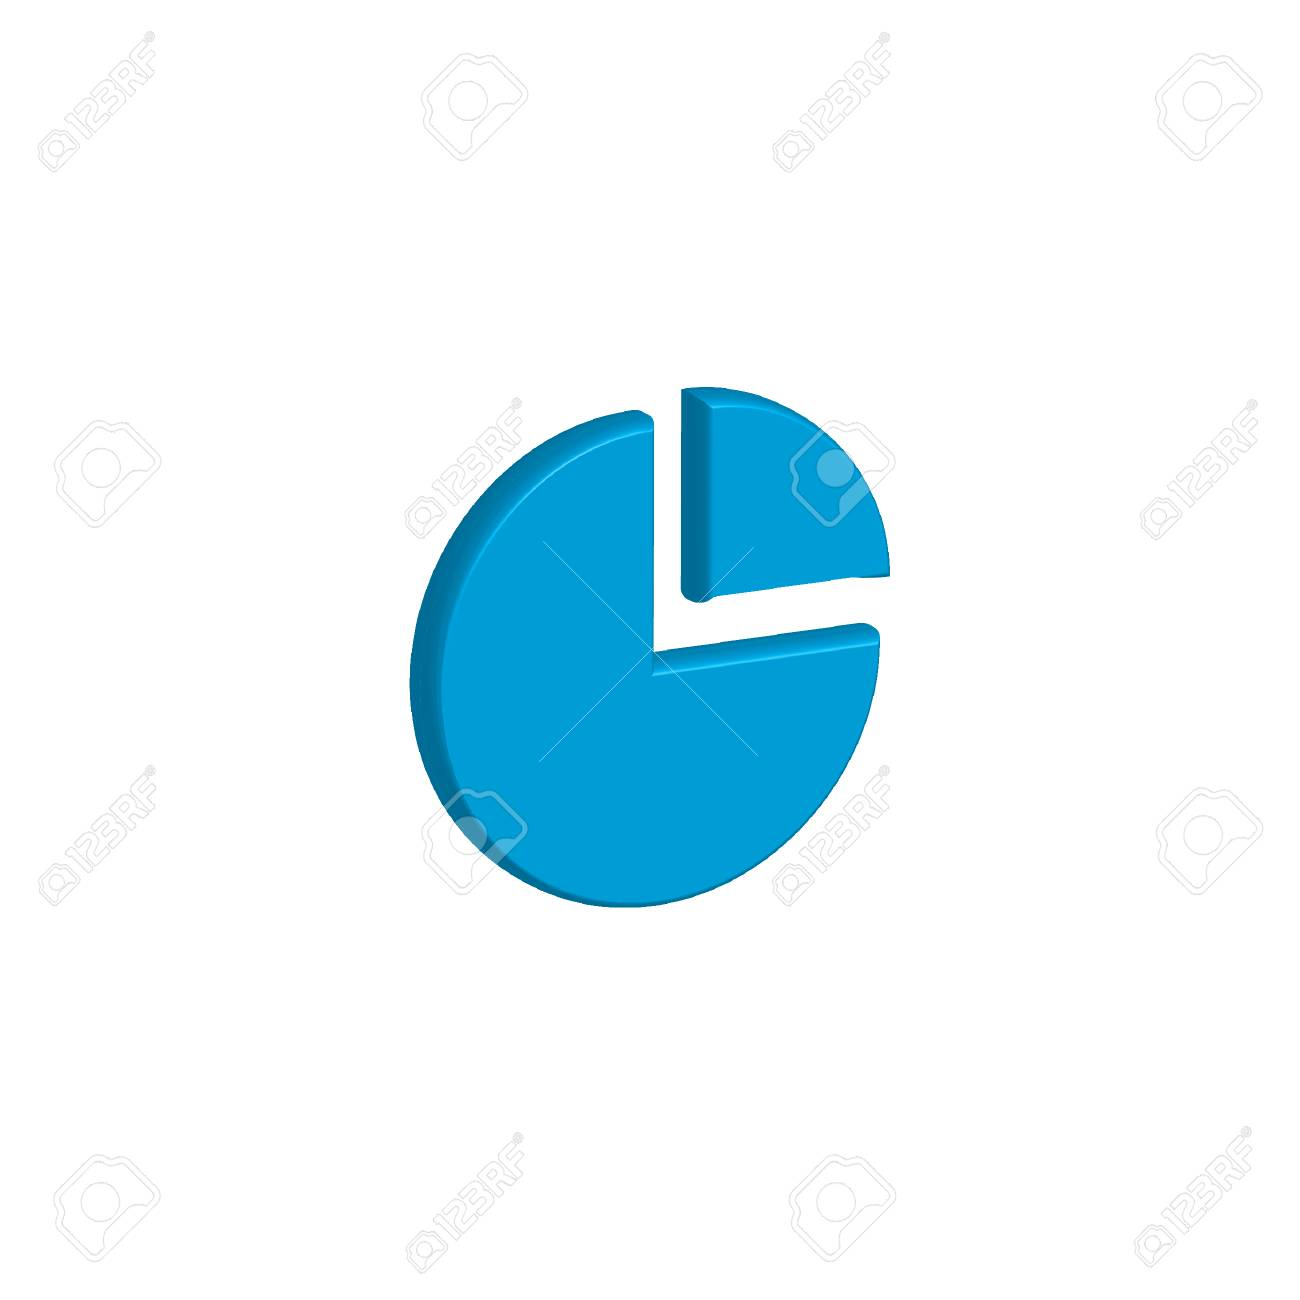 An icon illustration isolated on a background pie chart exploded an icon illustration isolated on a background pie chart exploded stock illustration 54310143 nvjuhfo Image collections